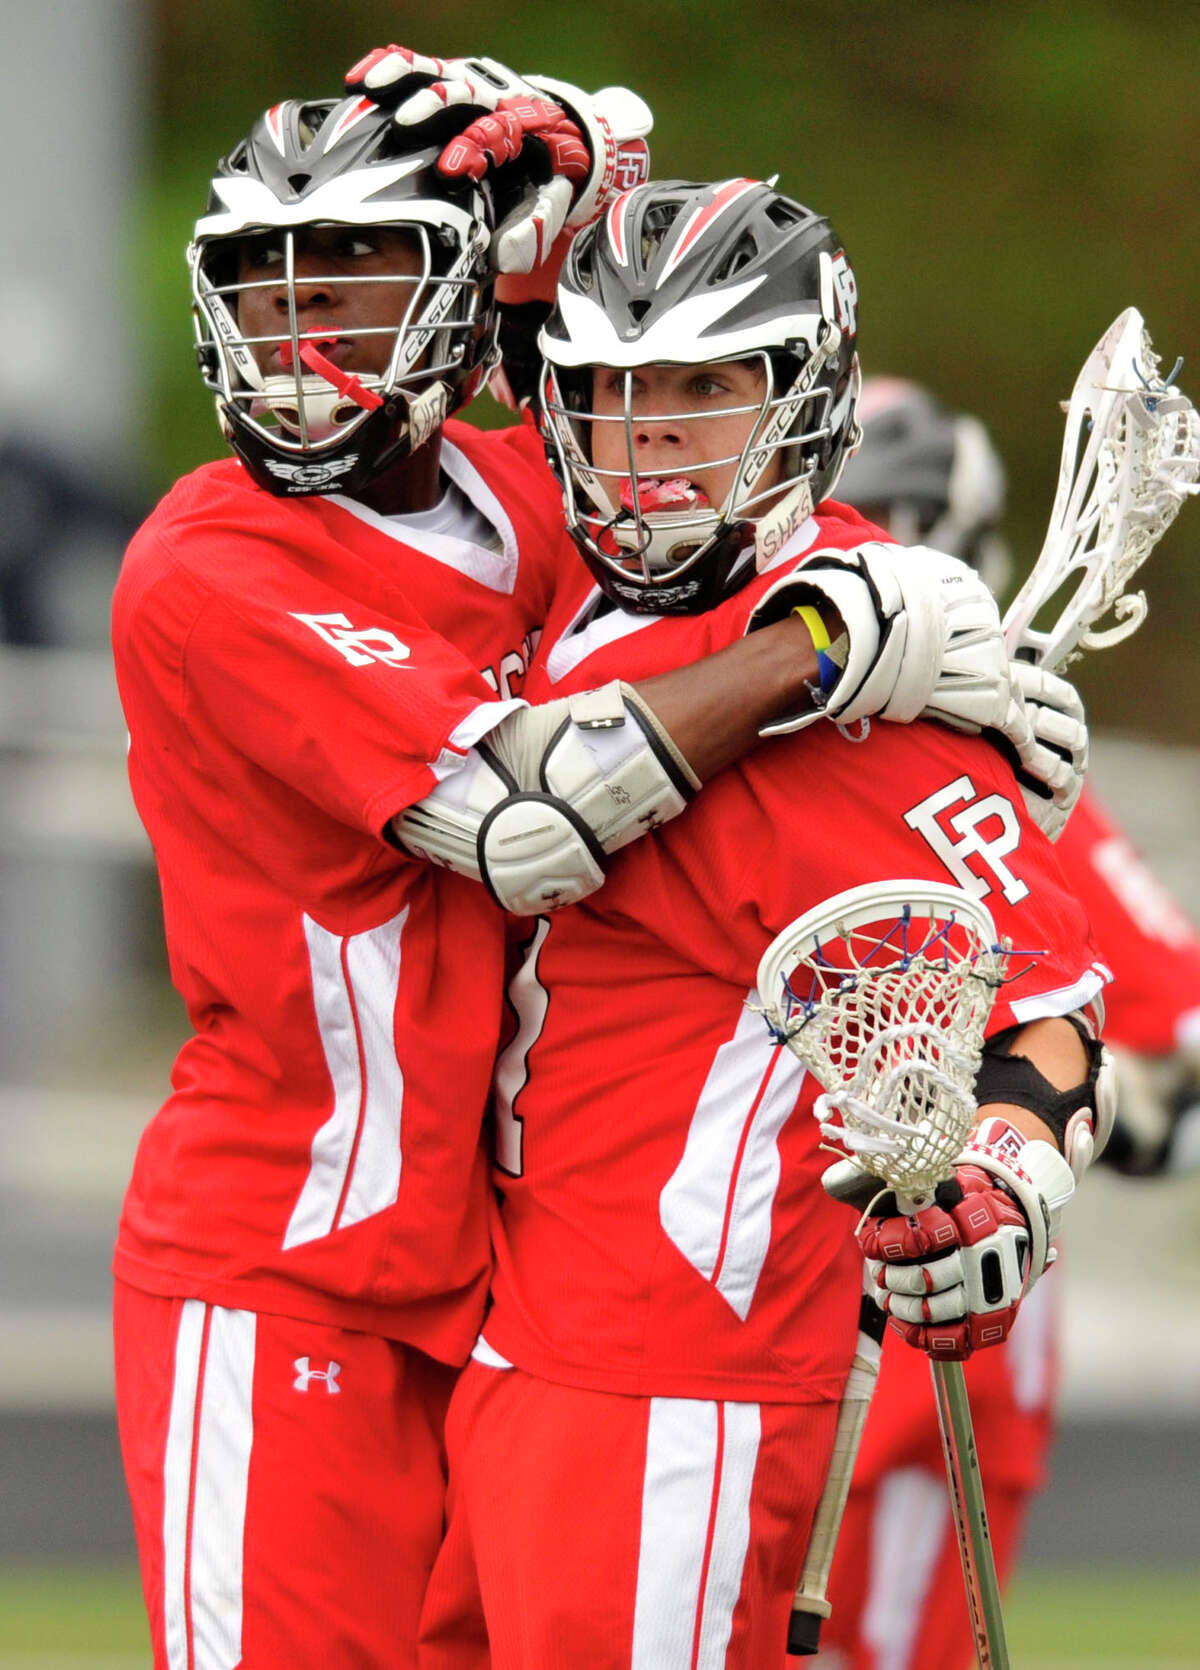 Fairfield Prep's Kevin Brown, right, congratulates his fellow teammate Austin Sims after Sims scored in their game at Wilton High School on Wednesday, May 8, 2013. Fairfield Prep won, 16-9.